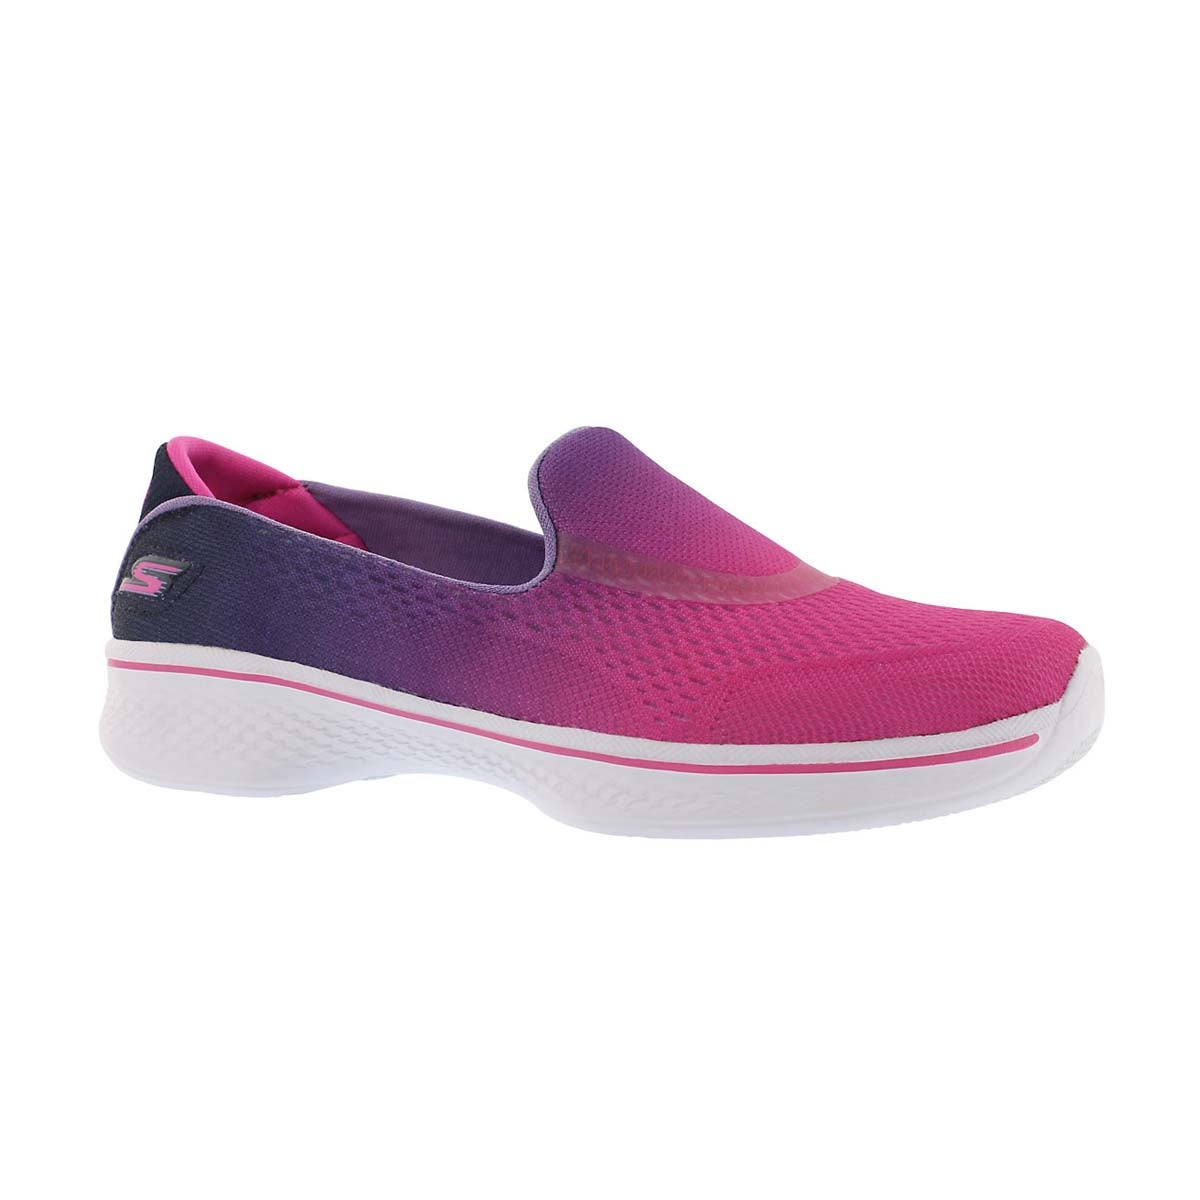 Girls' GOwalk 4 pink ombre slip on shoes